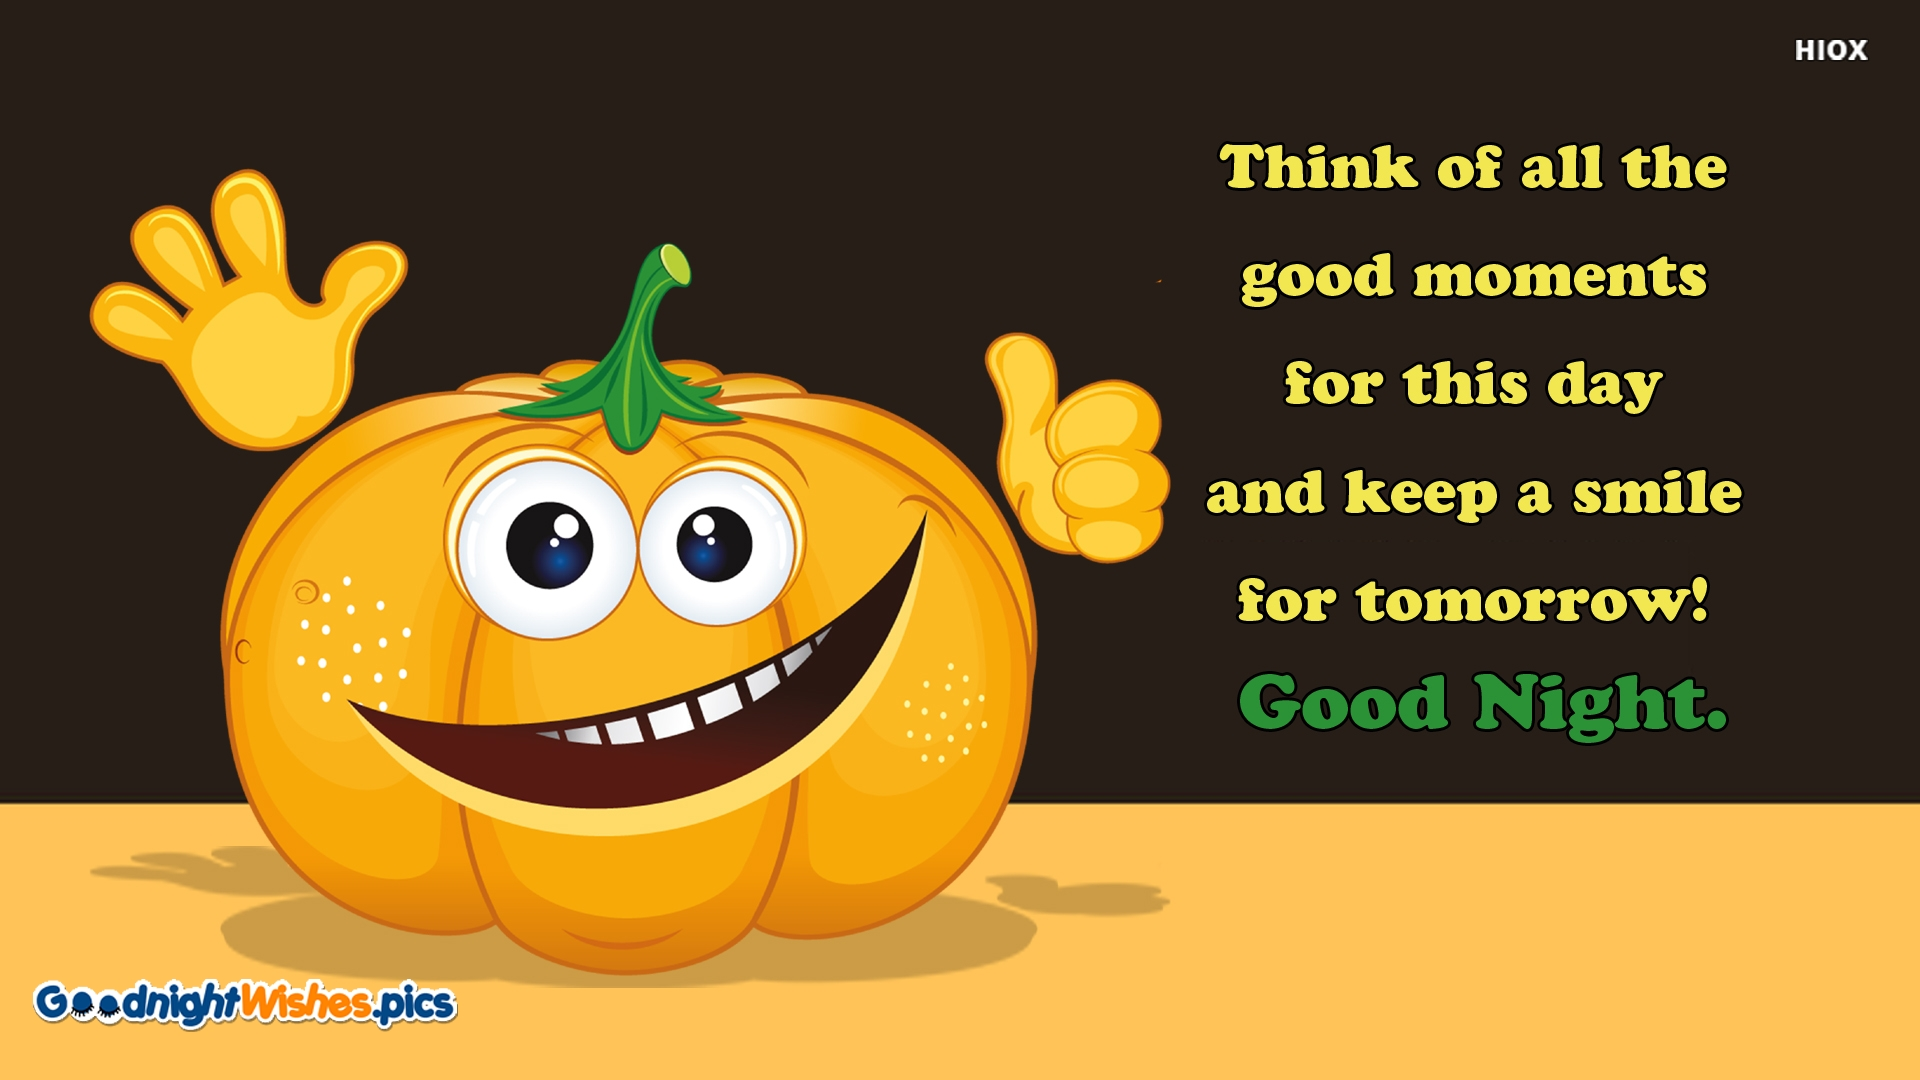 Think Of All The Good Moments For This Day and Keep A Smile For Tomorrow!